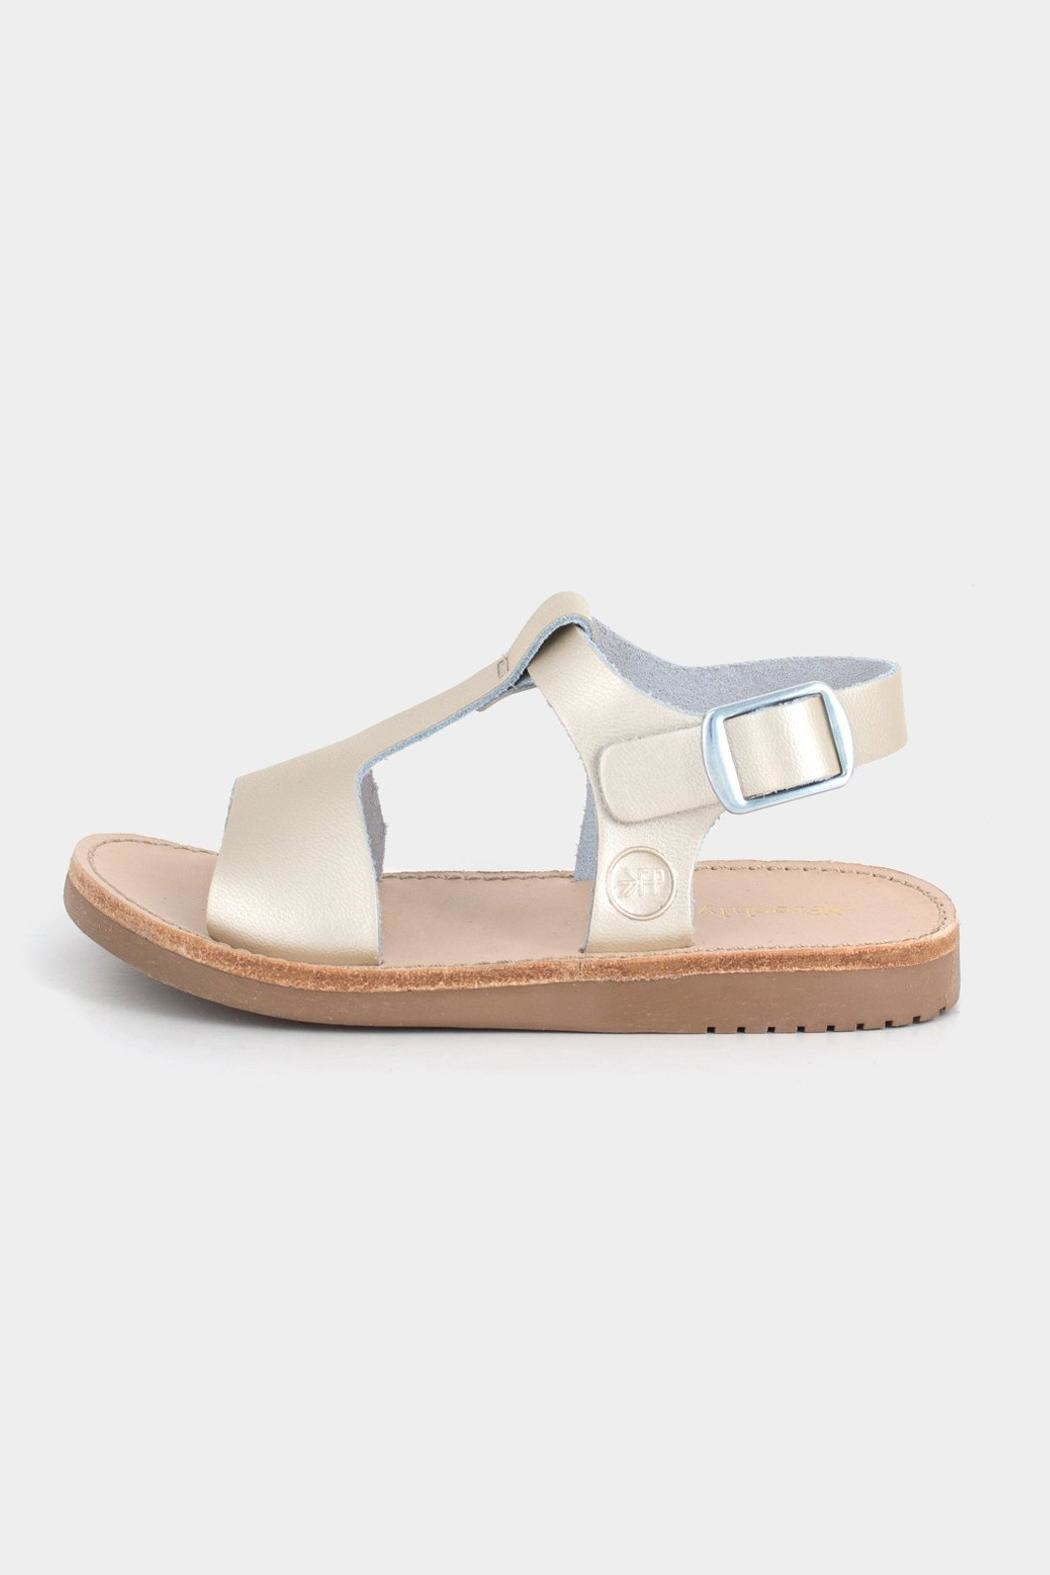 Freshly Picked Platinum Malibu Sandal - Front Full Image